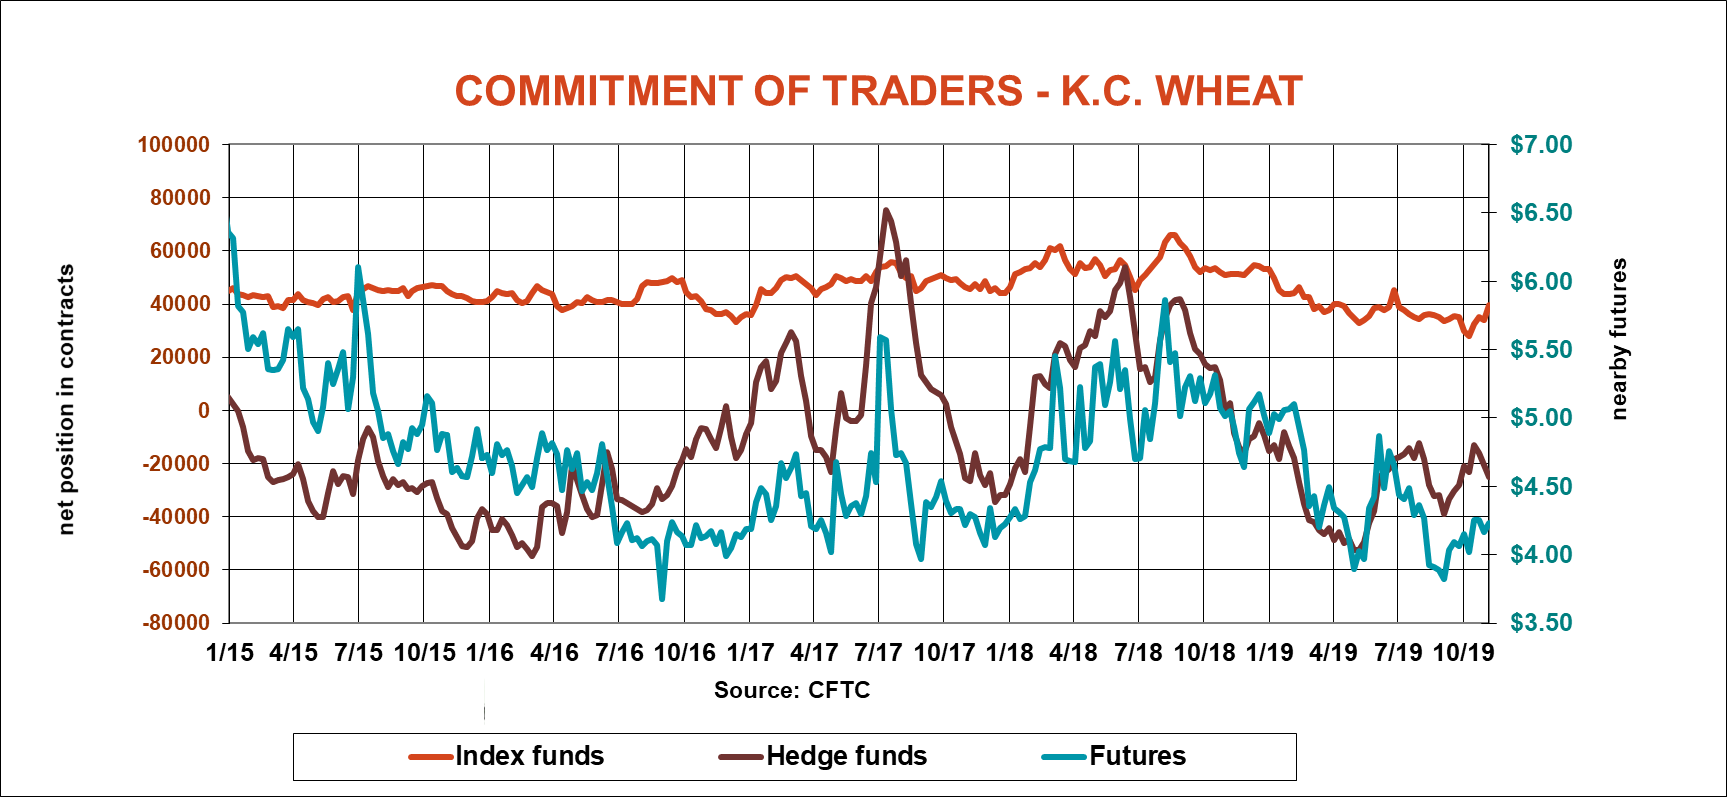 commitment-traders-KC-wheat-cftc-110819.png